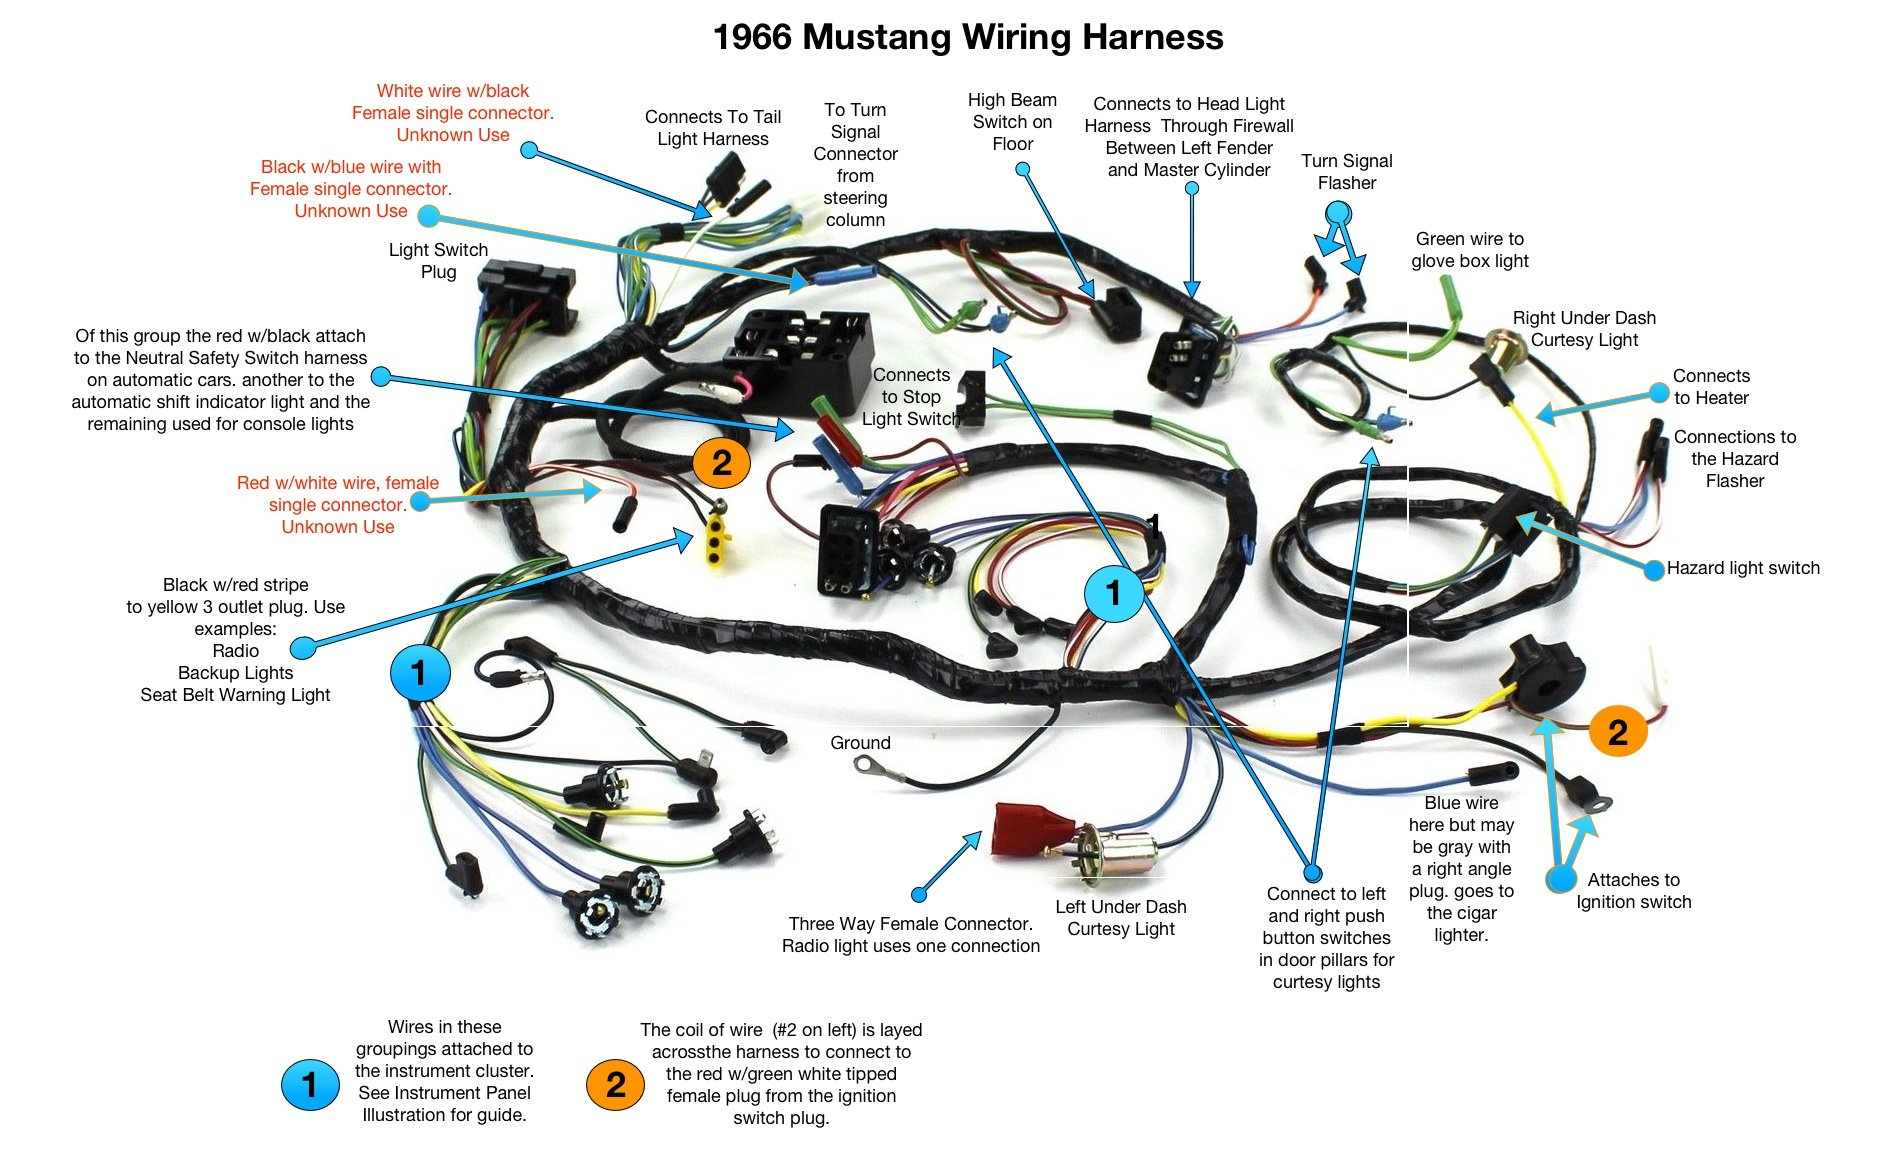 507585d1458686767 66 wiring harness diagram 66 mustang wiring harness harness wiring diagram jeep wrangler wiring harness diagram \u2022 free ford wiring harness connectors at bayanpartner.co